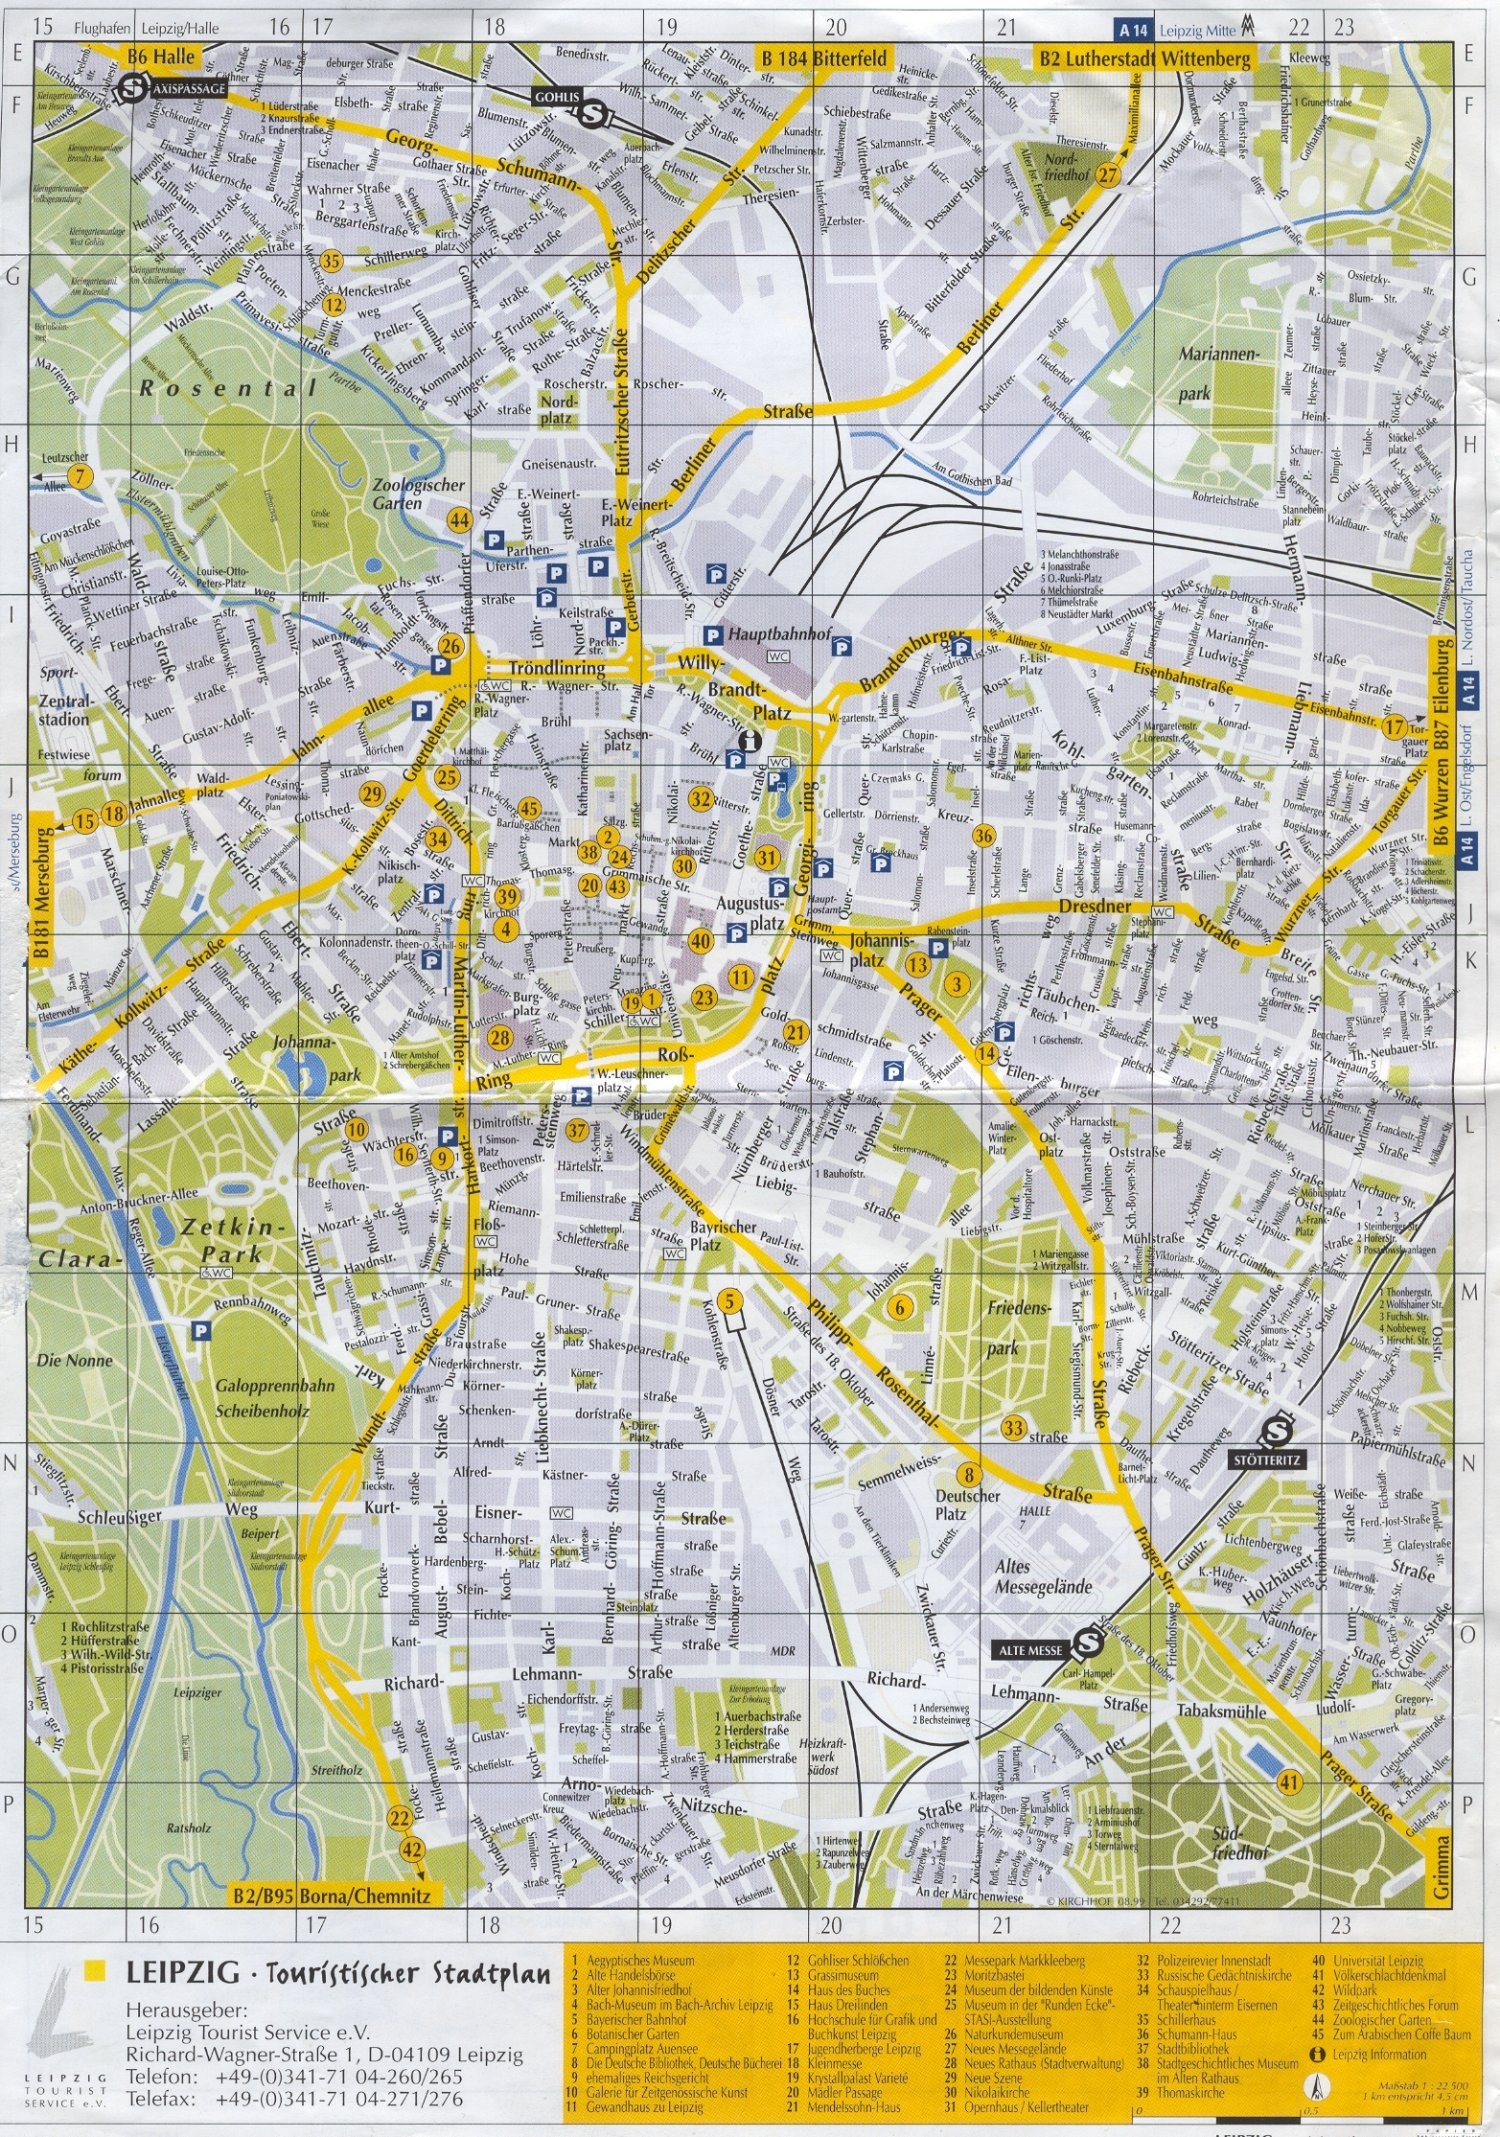 Guide To Bach Tour: Leipzig - Maps with Heidelberg Stuttgart Google Maps